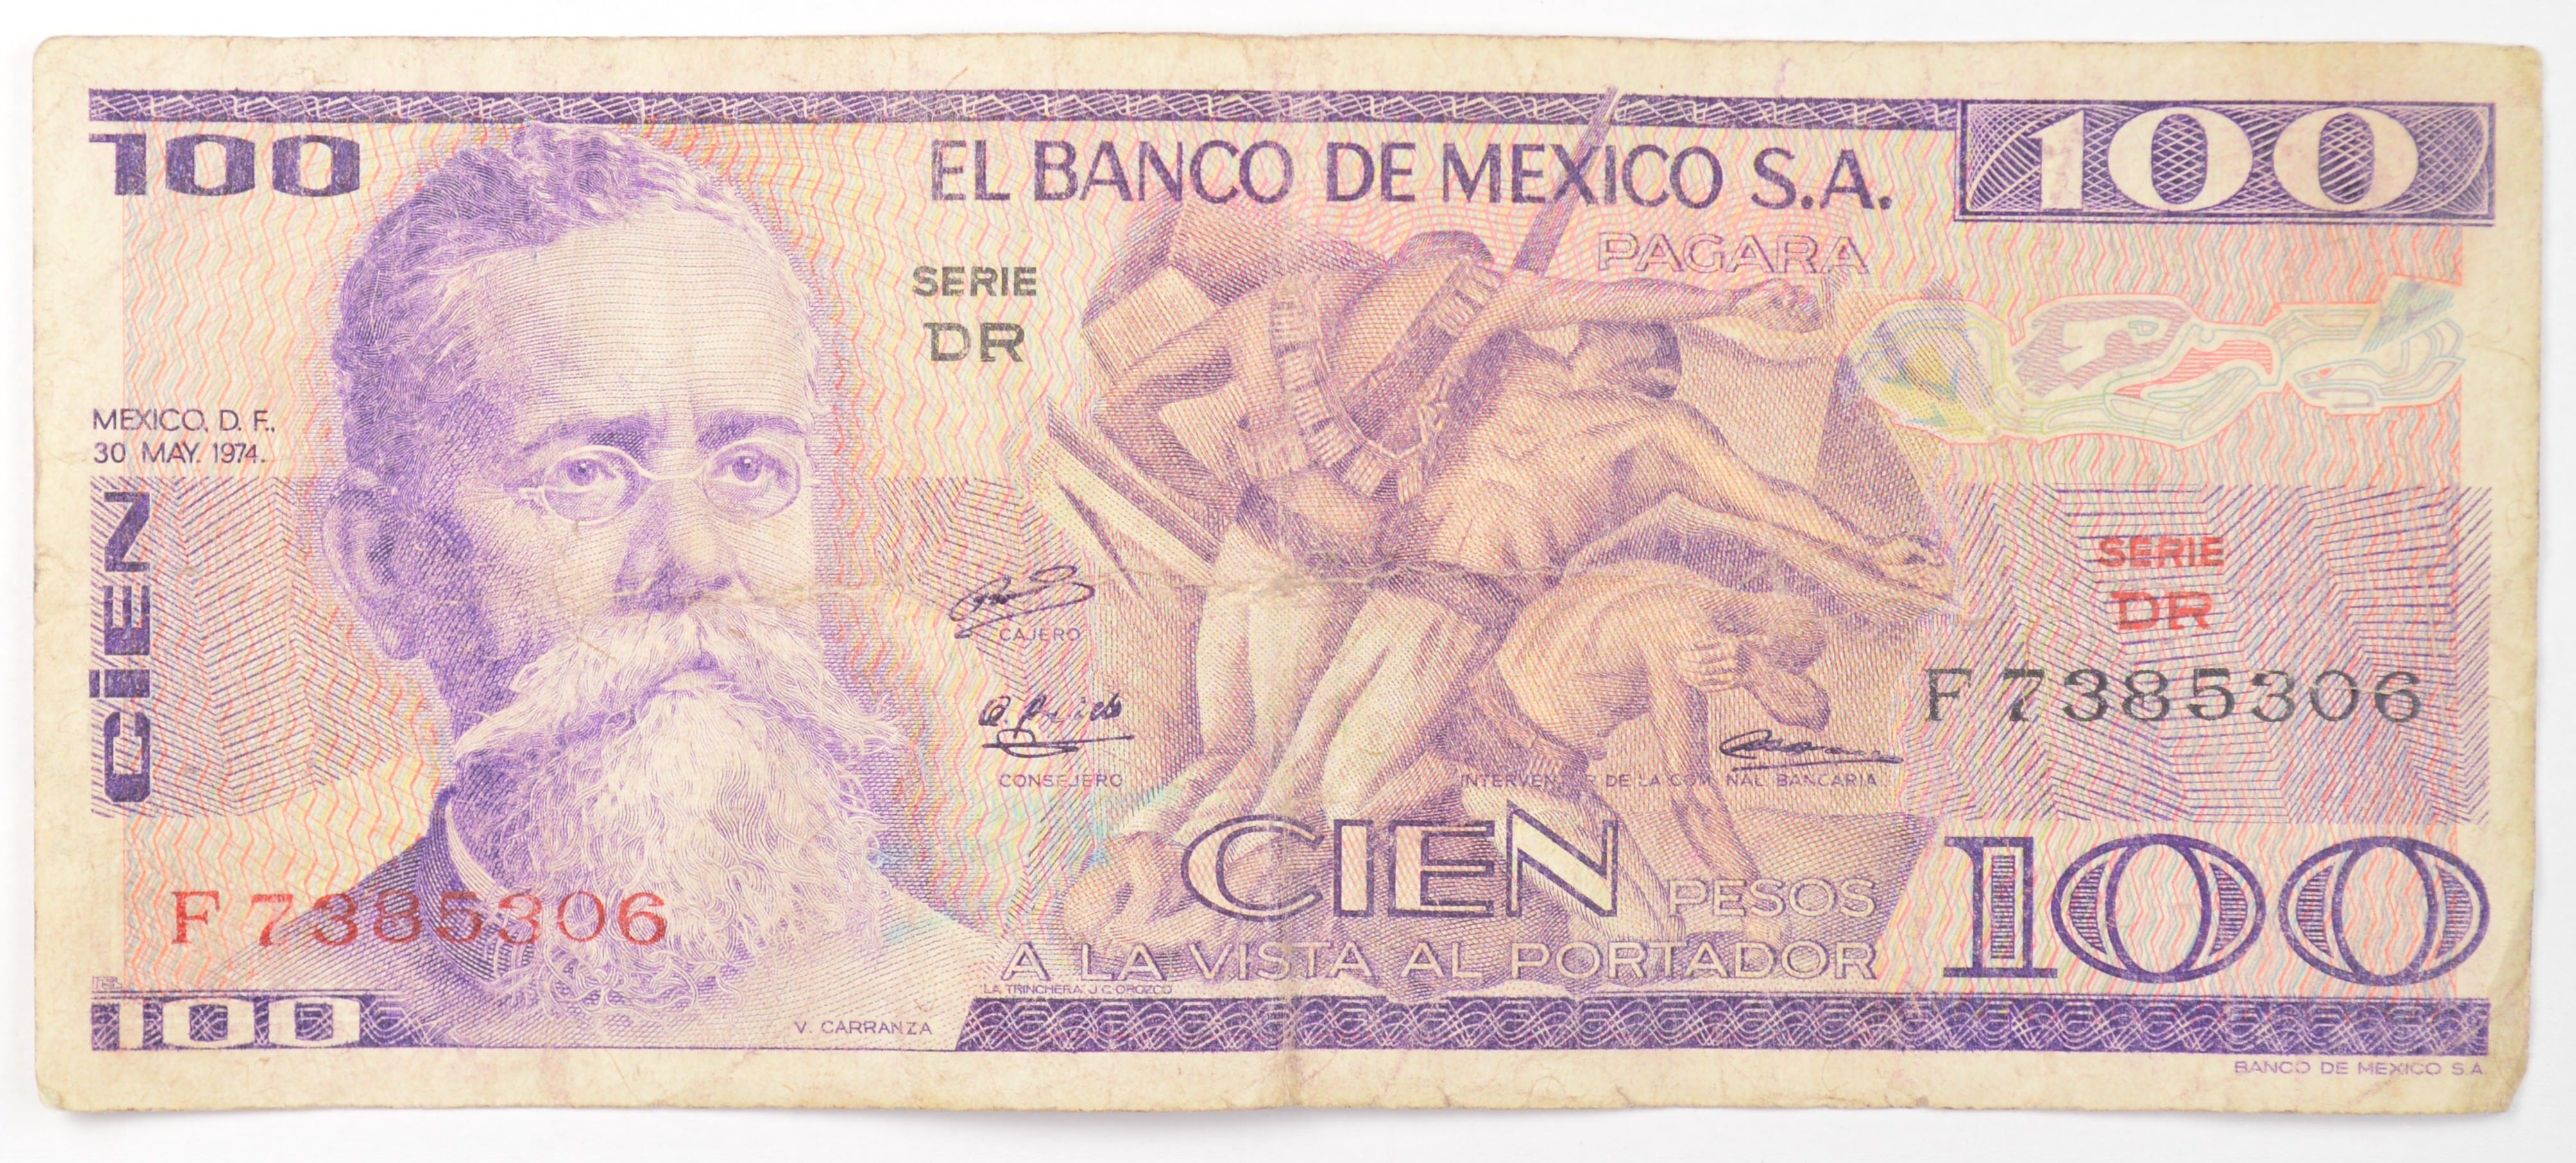 Vintage Mexican Paper Money Currency Collectible Note